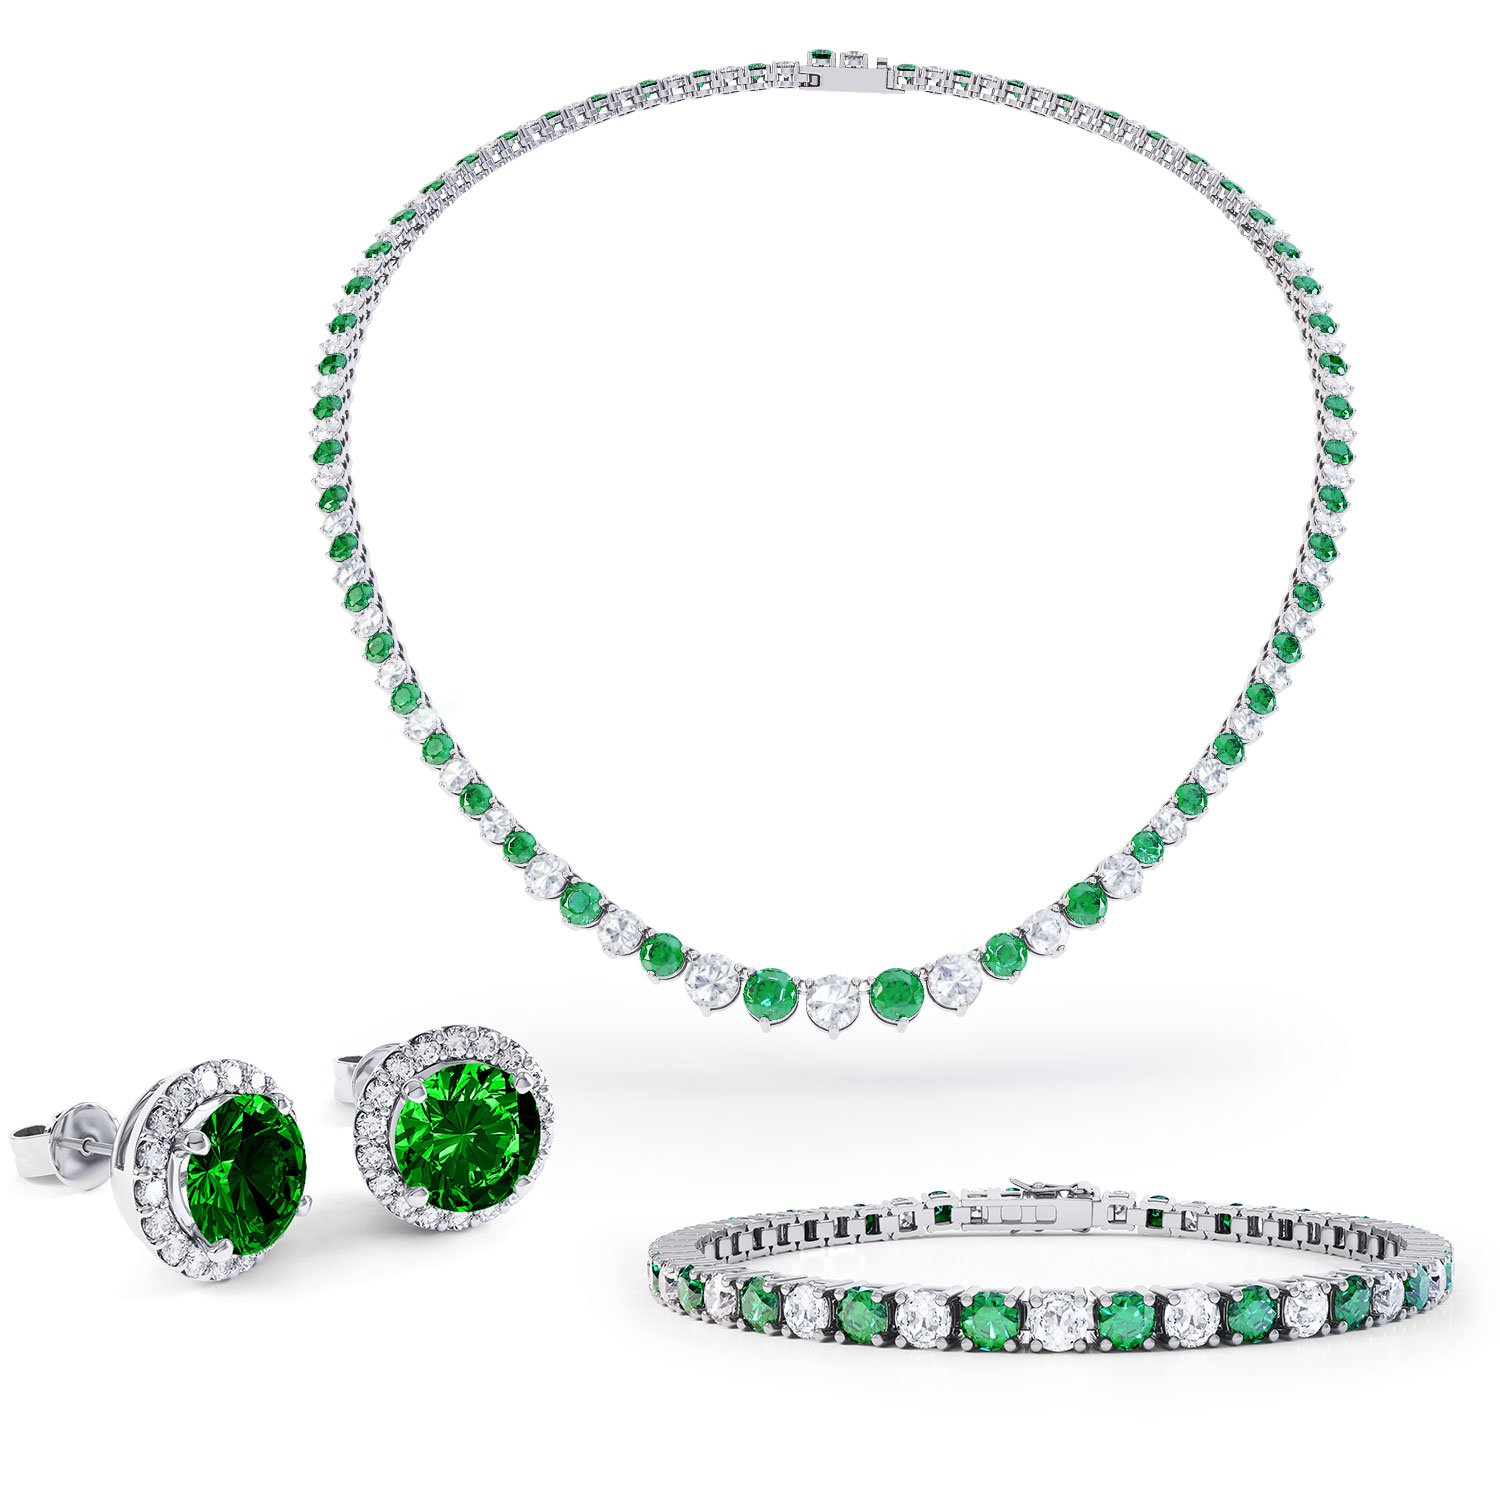 Eternity Emerald Platinum plated Silver Jewelry Set with Necklace